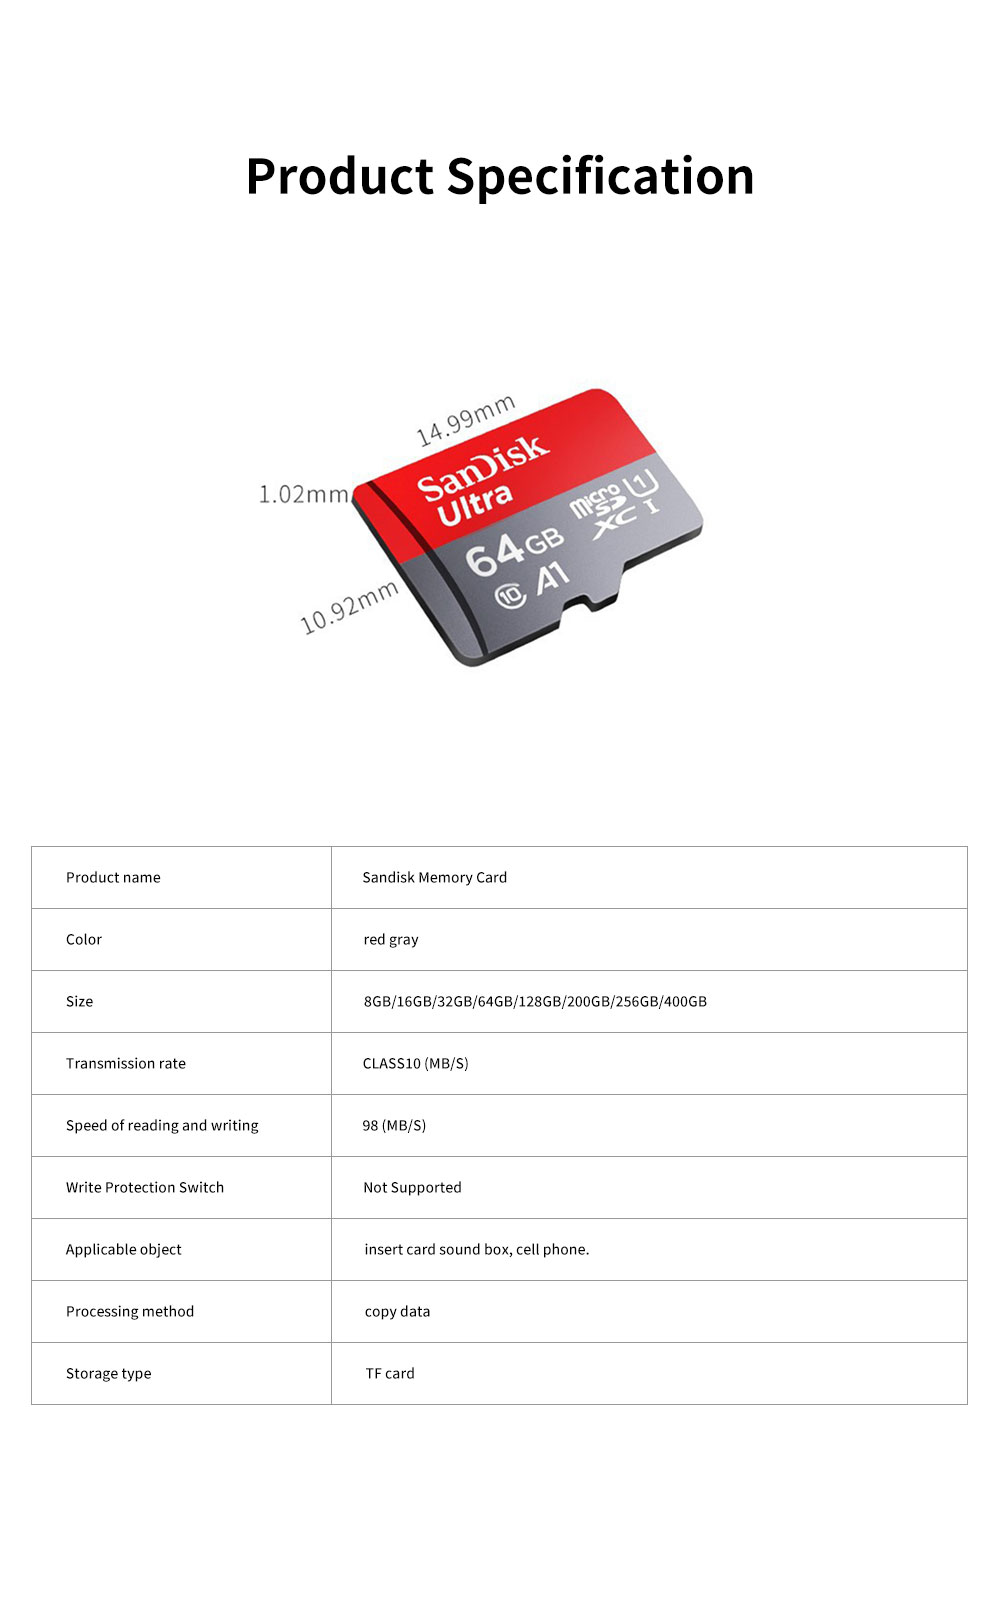 Sandisk Memory Card 400G 256G 200G 128G 64G 32G 16G 8G 98m/s High Speed TF Card C10 Security Recorder SD Storage Card 6